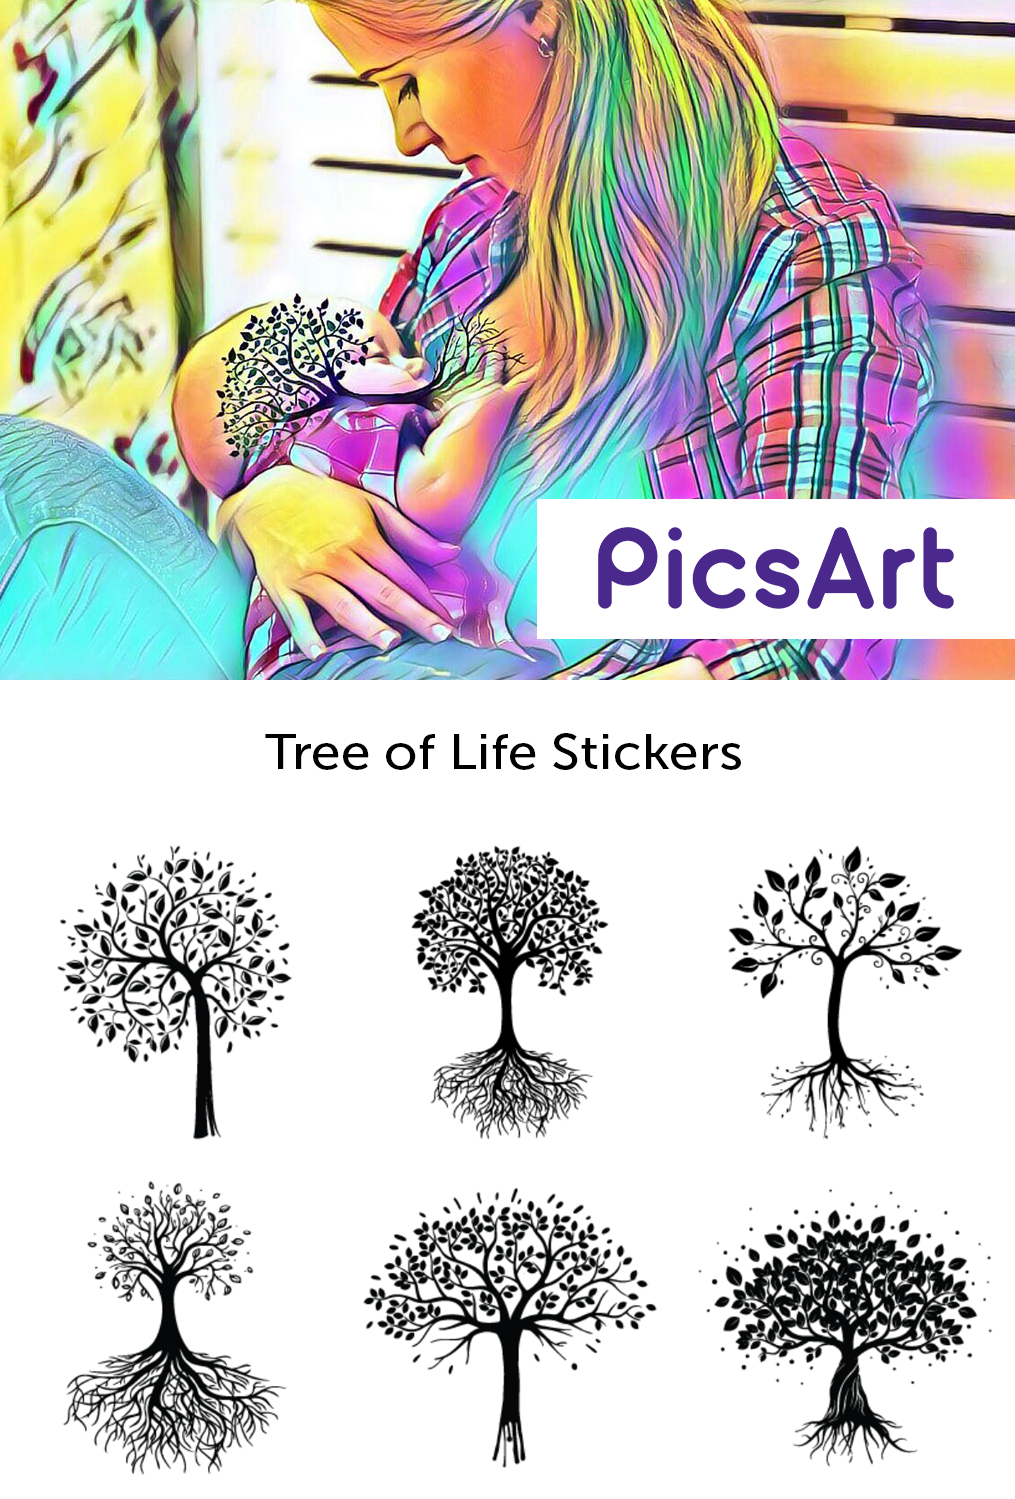 how to create a sticker on picsart